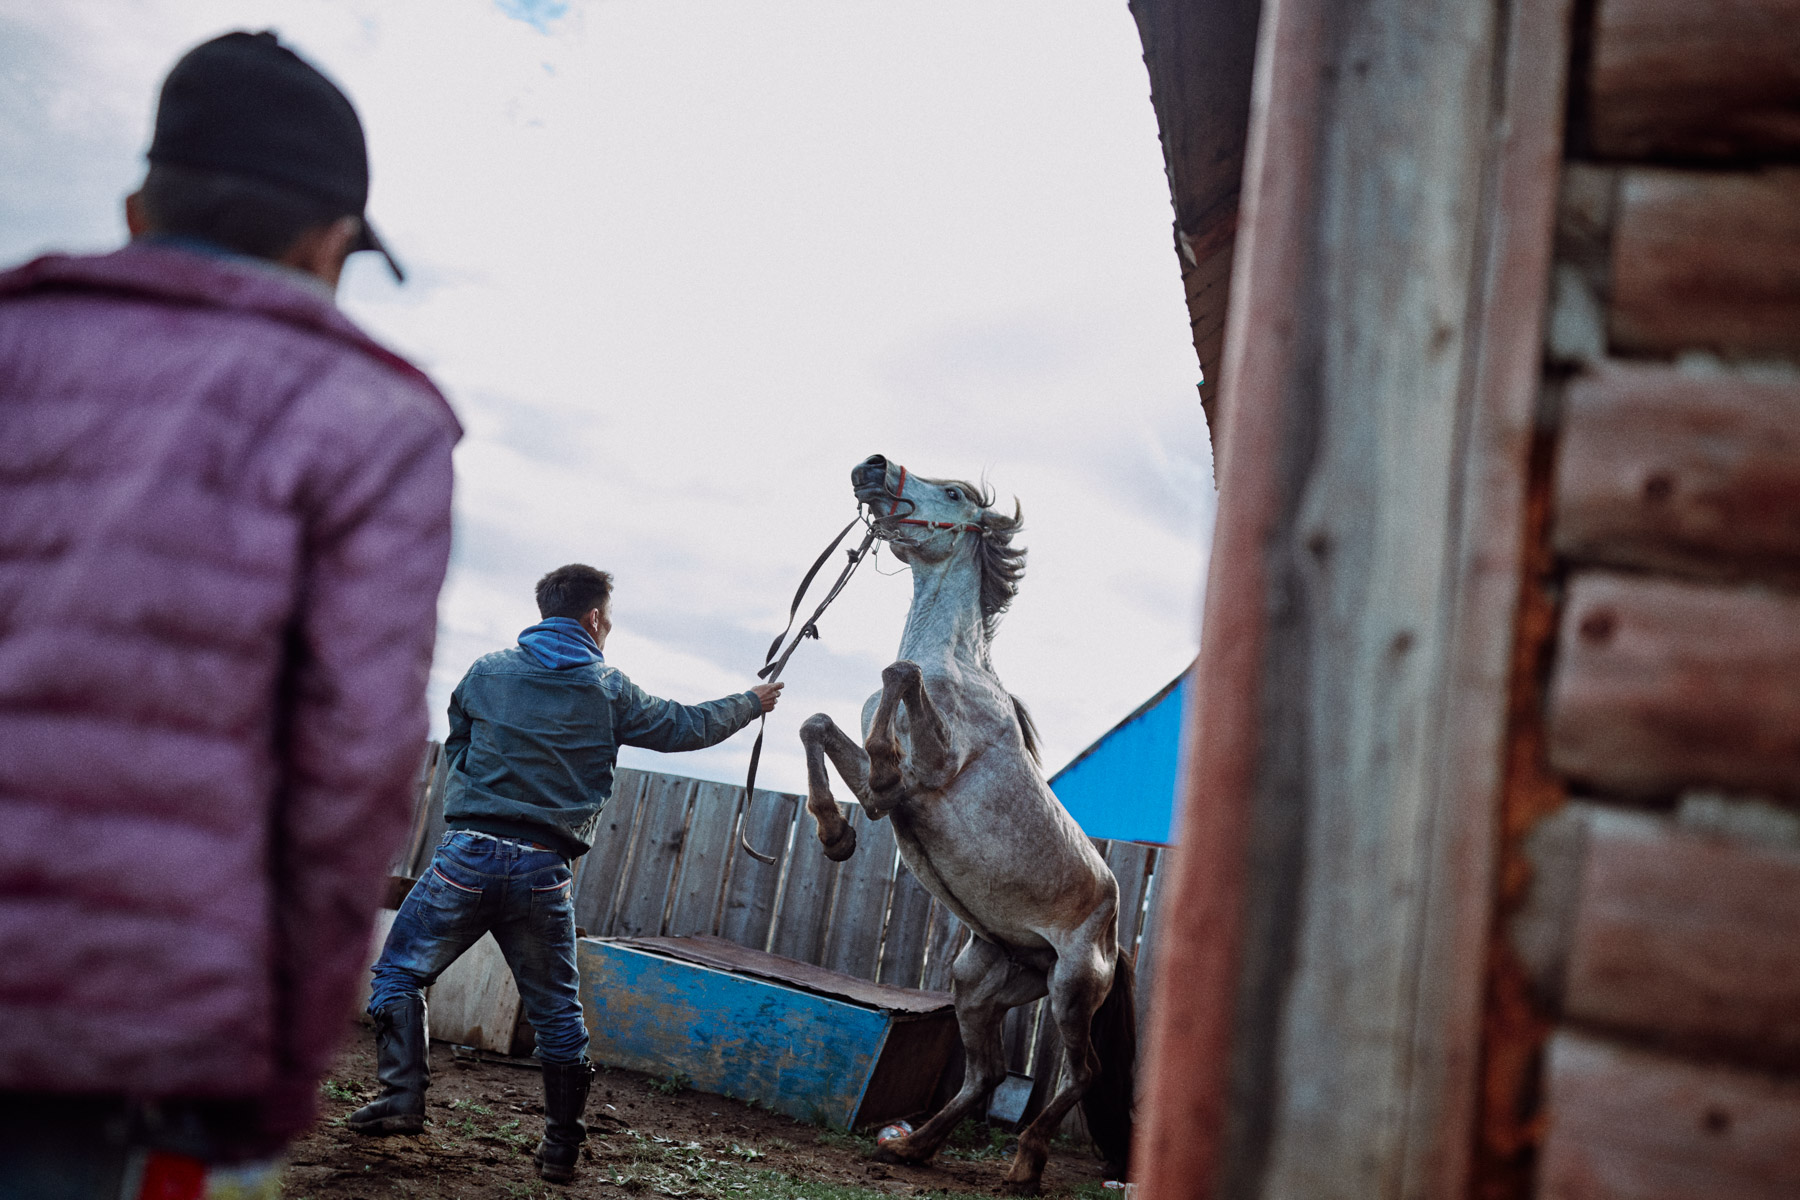 Two men attempt to break in a wild horse in northern Mongolia.